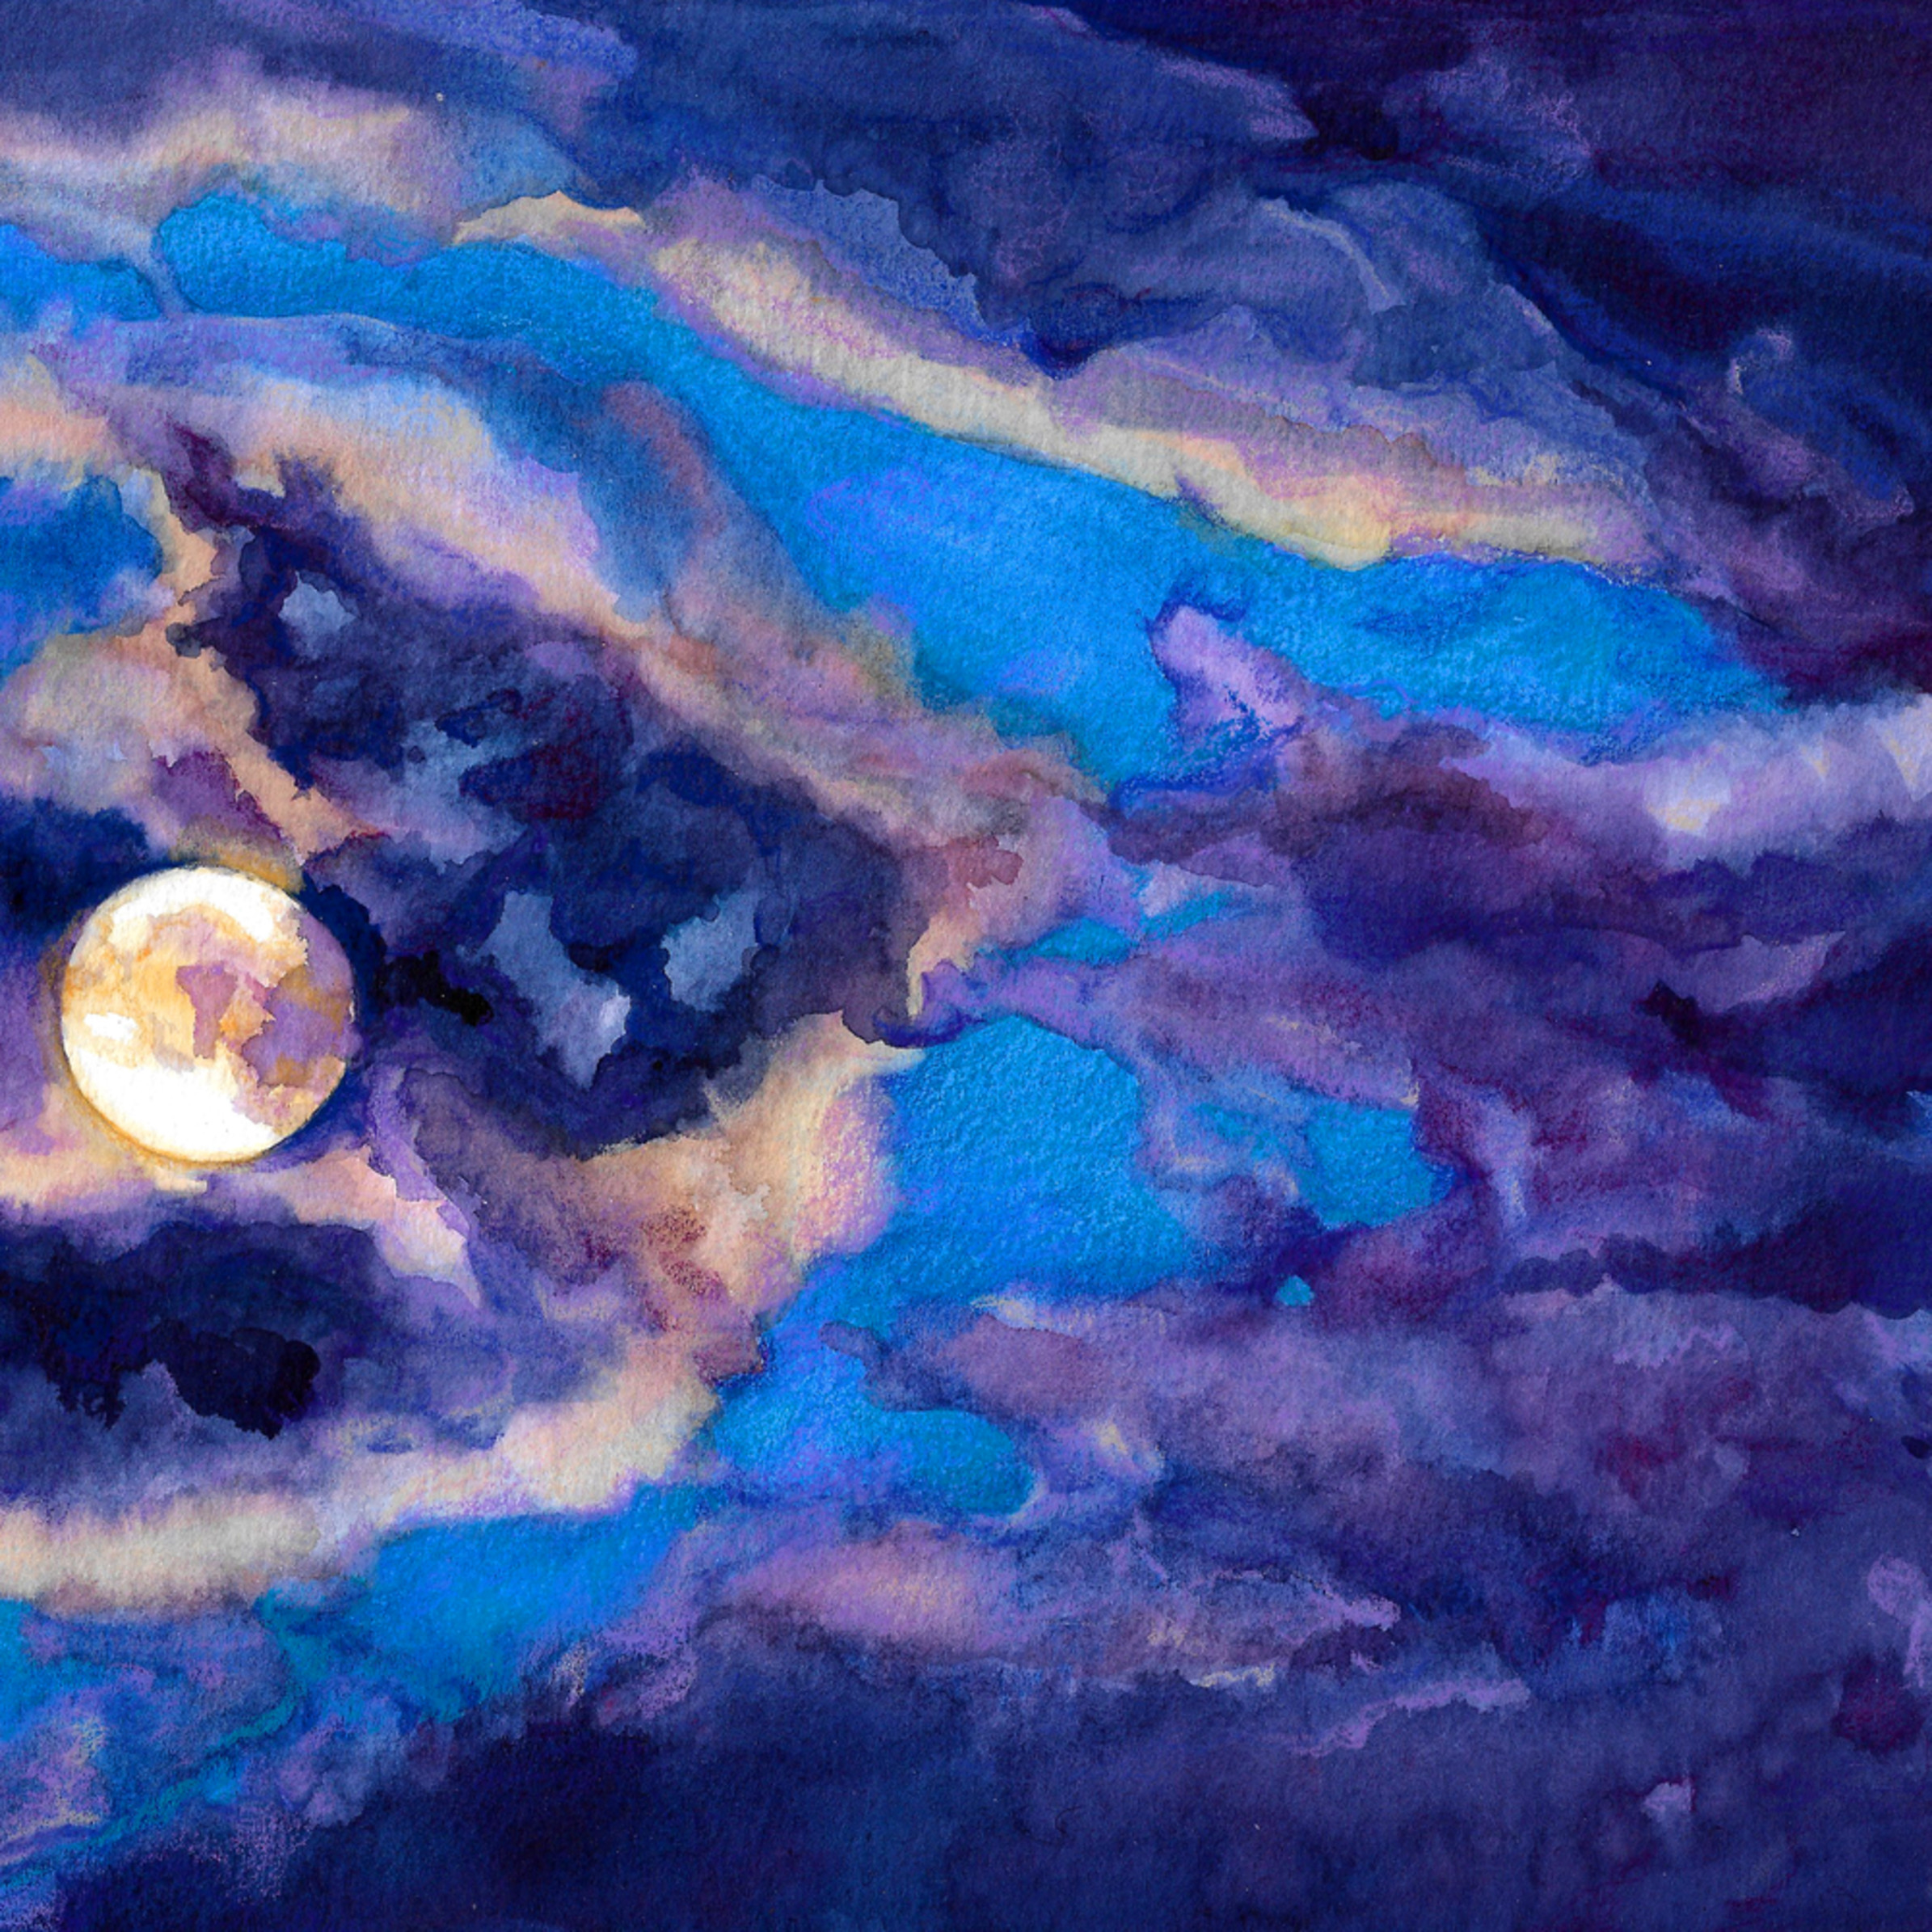 Moonlit brittanyselfe 10x8watercolor 2020 tuckpj